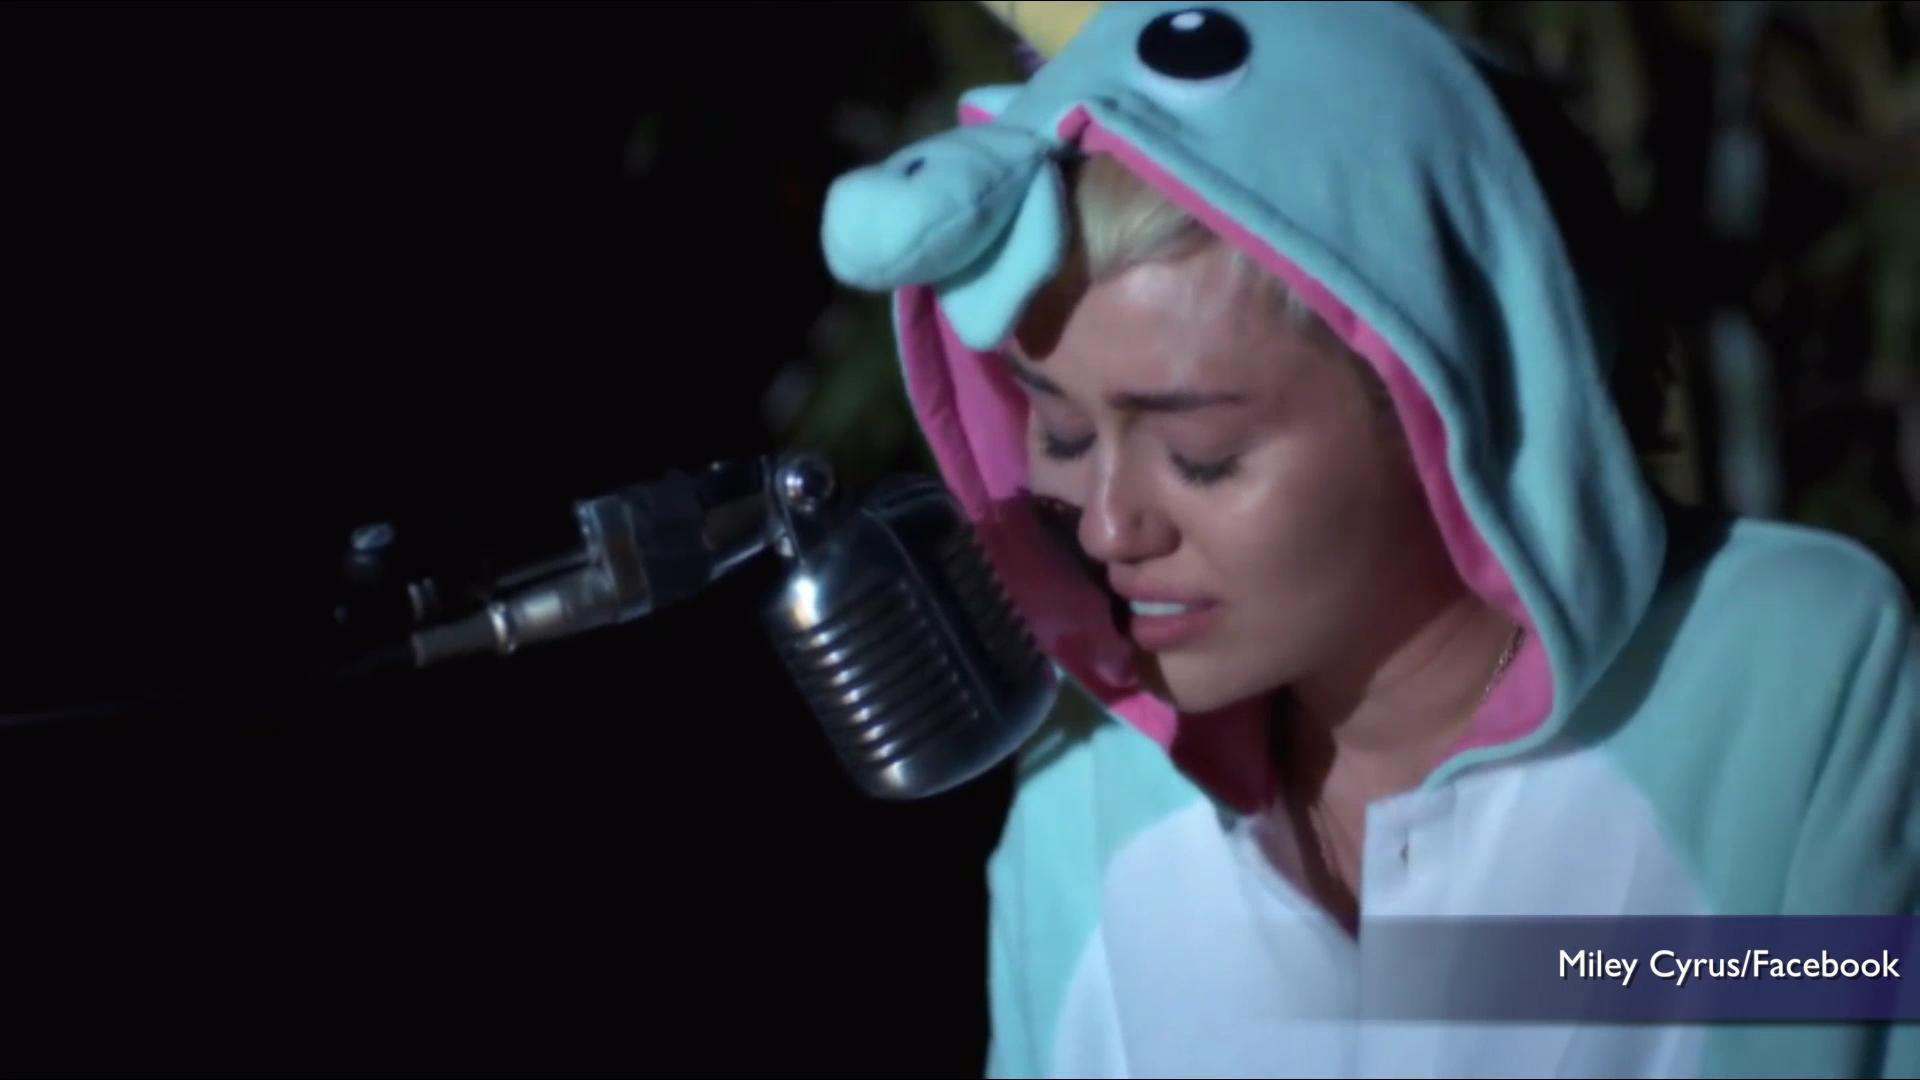 Miley Cyrus cries in a song she wrote for dead fish